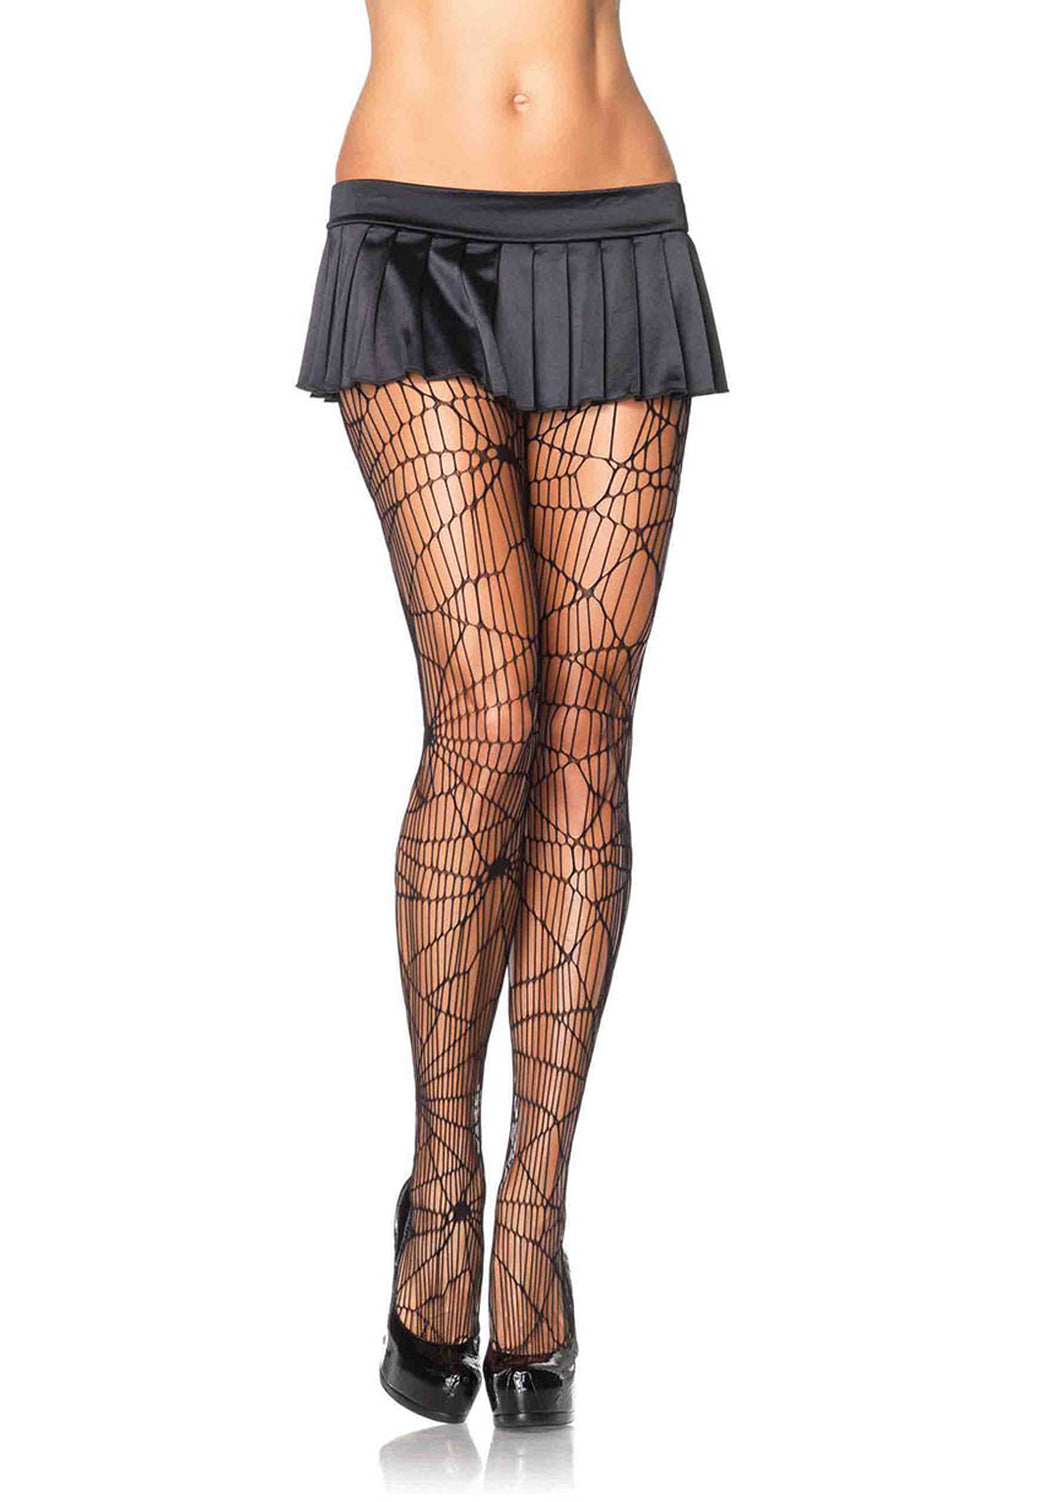 Leg Avenue Distressed Net Pantyhose